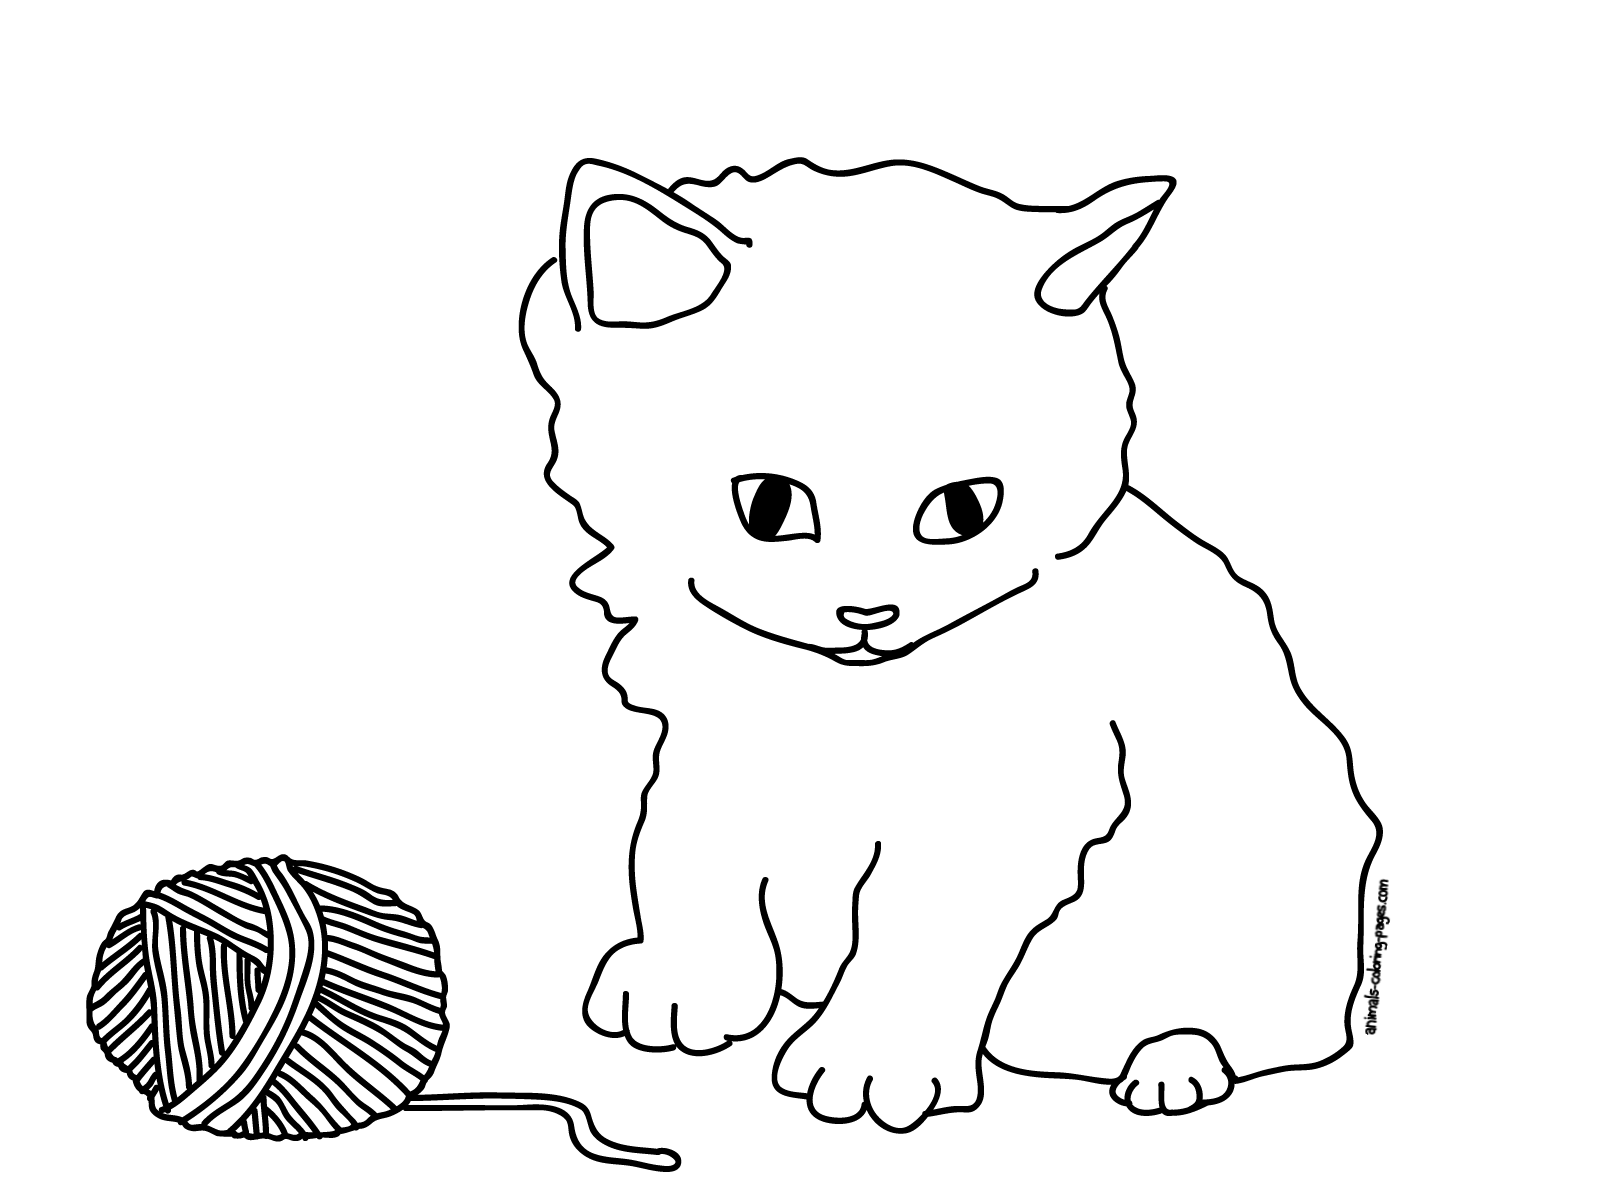 kitten coloring pictures printable kitten coloring pages best coloring pages for kids kitten printable pictures coloring